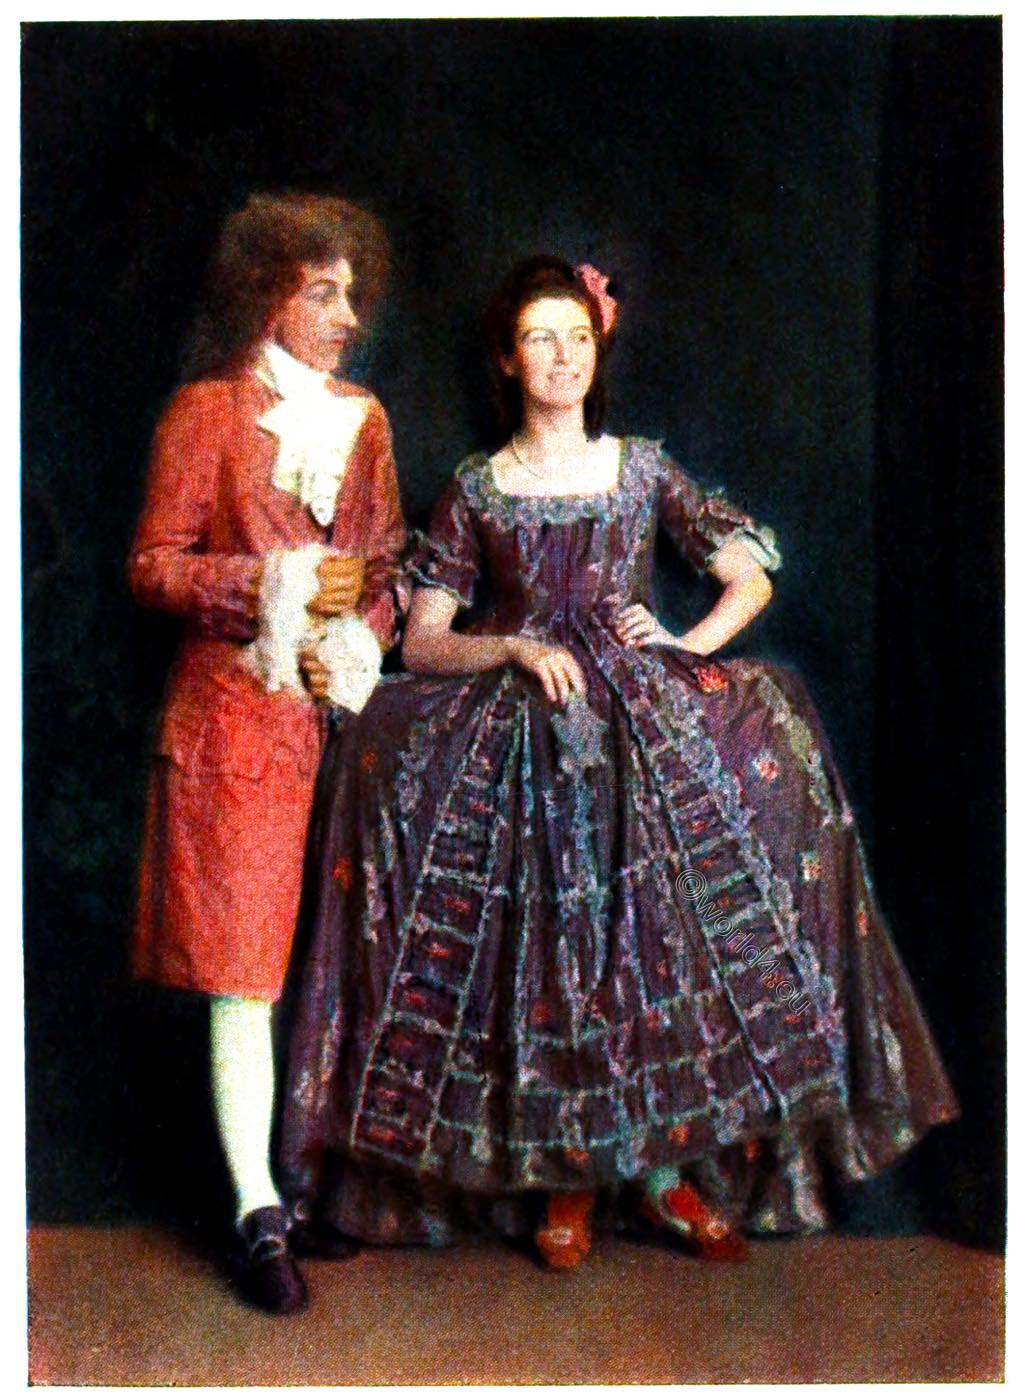 French Fashion And Costume History Of The 18th Century